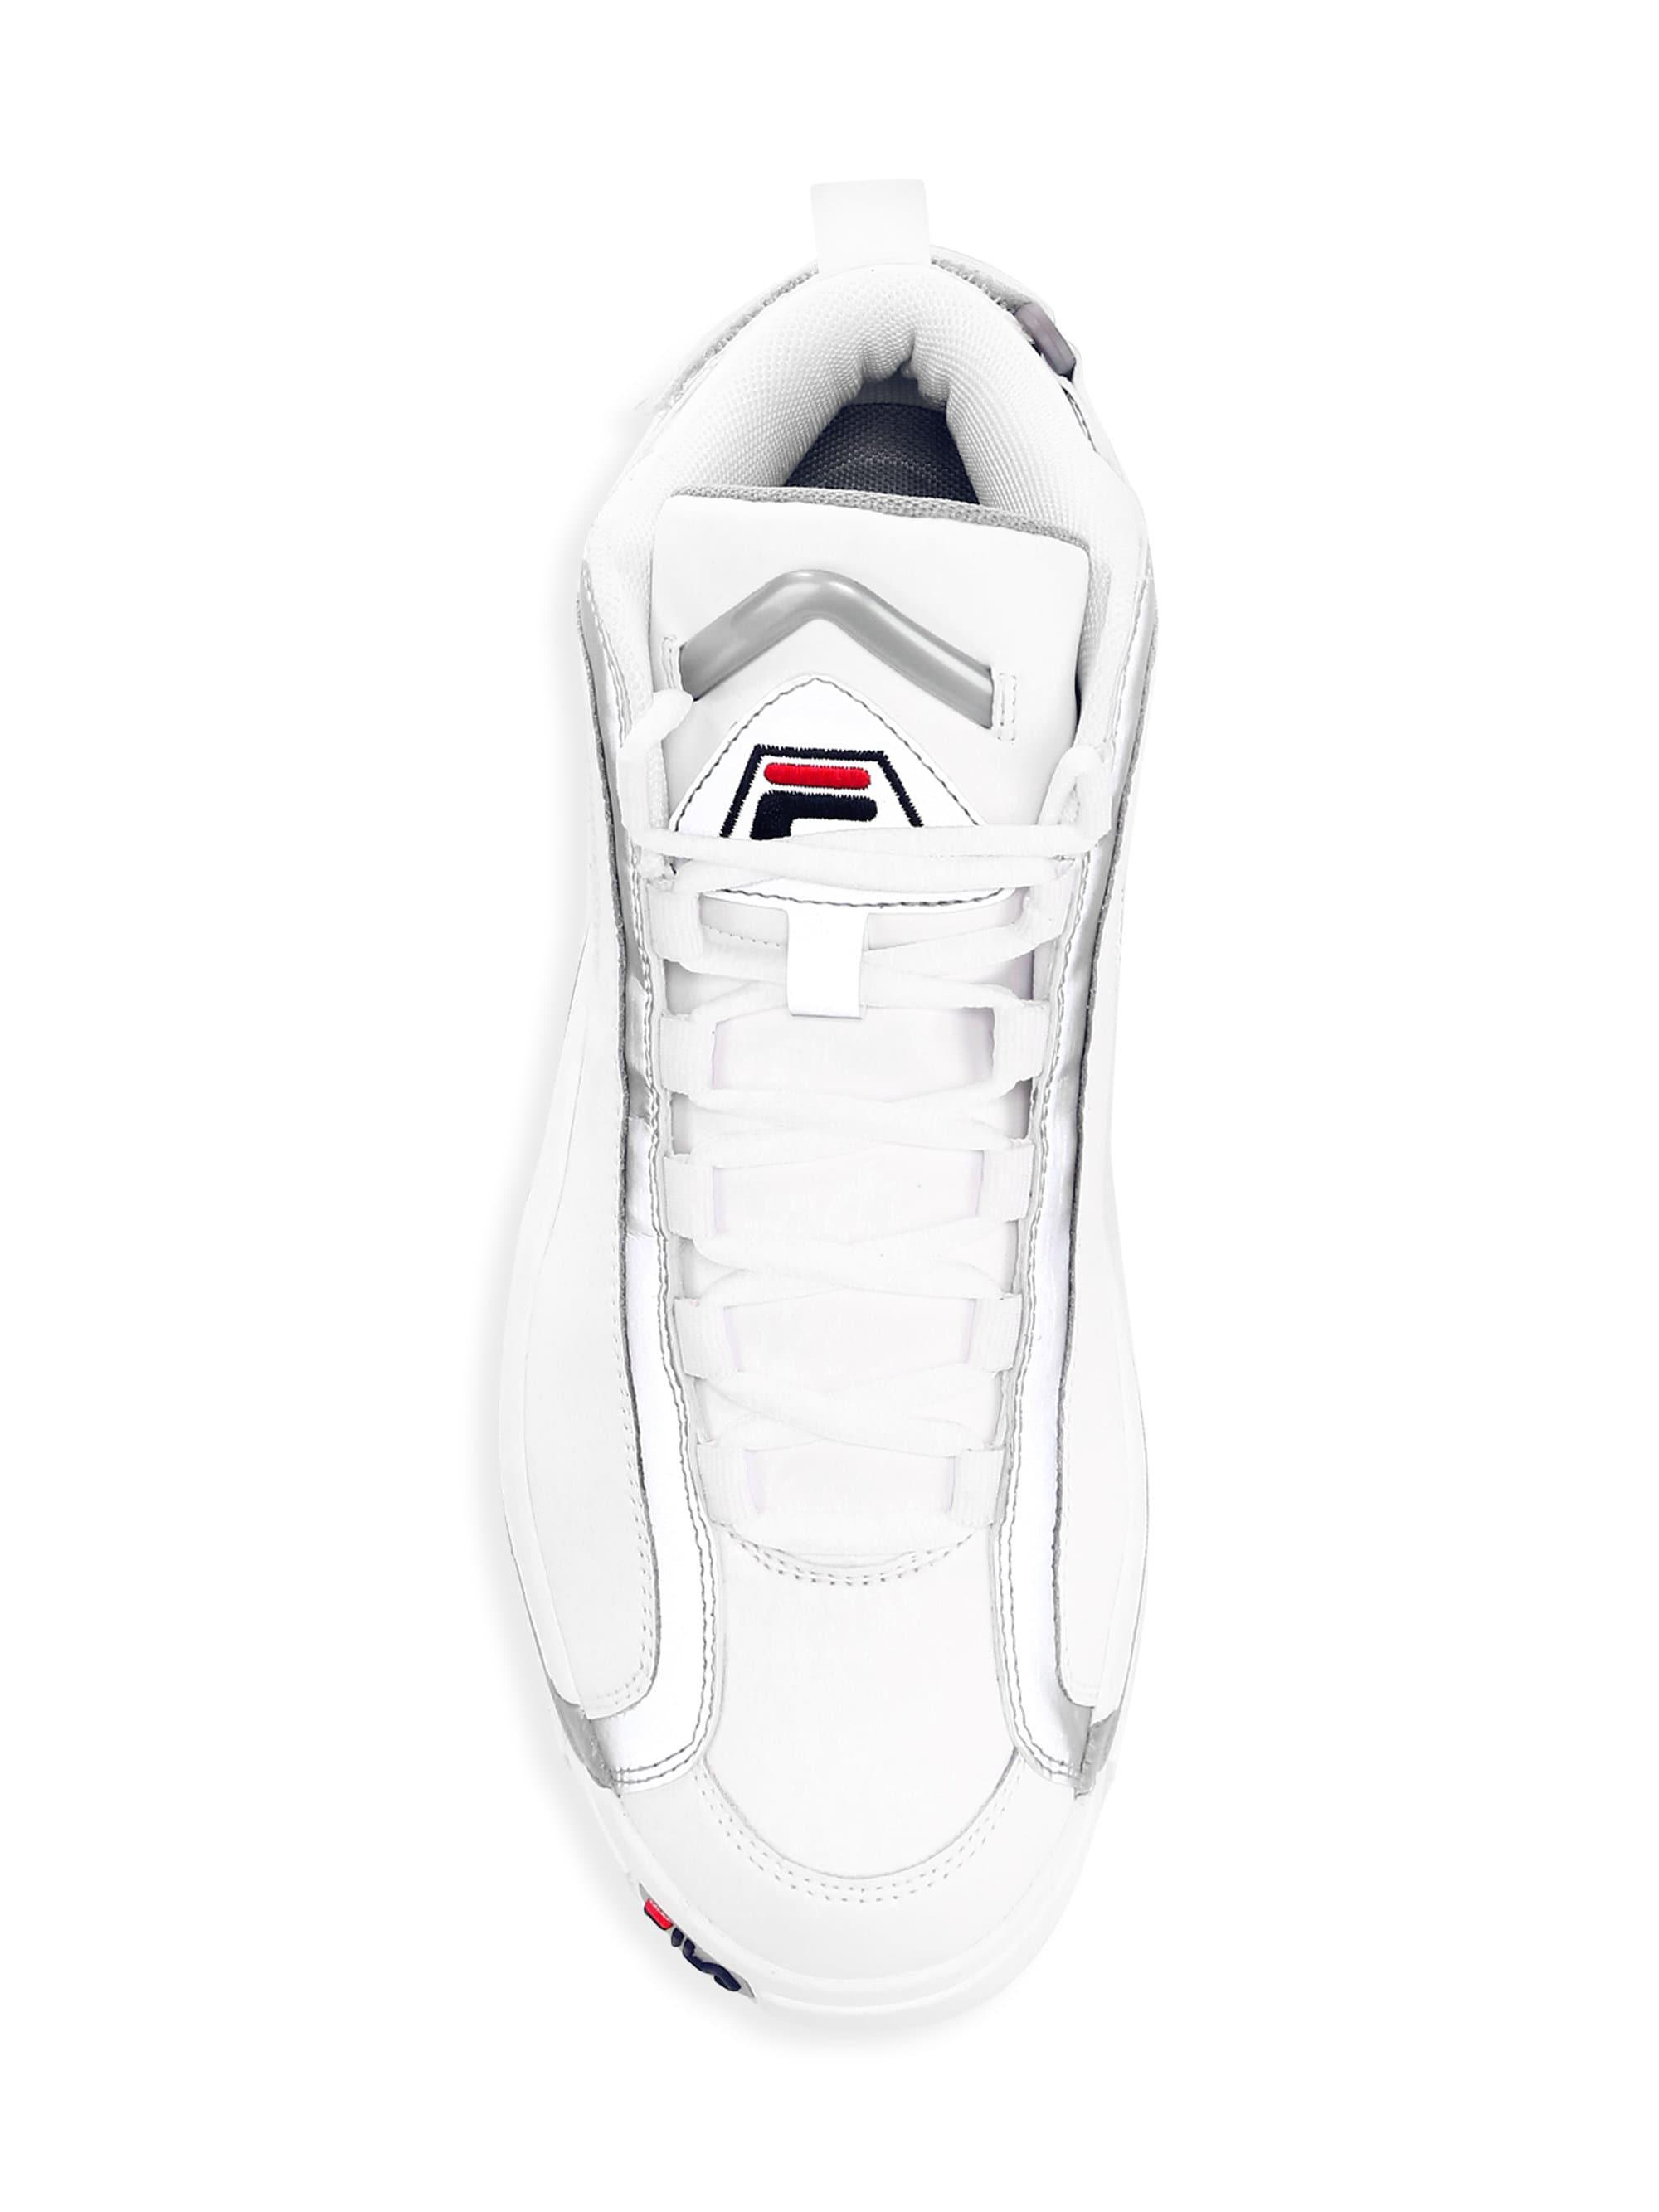 Men's Grant Hill 96 Sneakers White Size 8